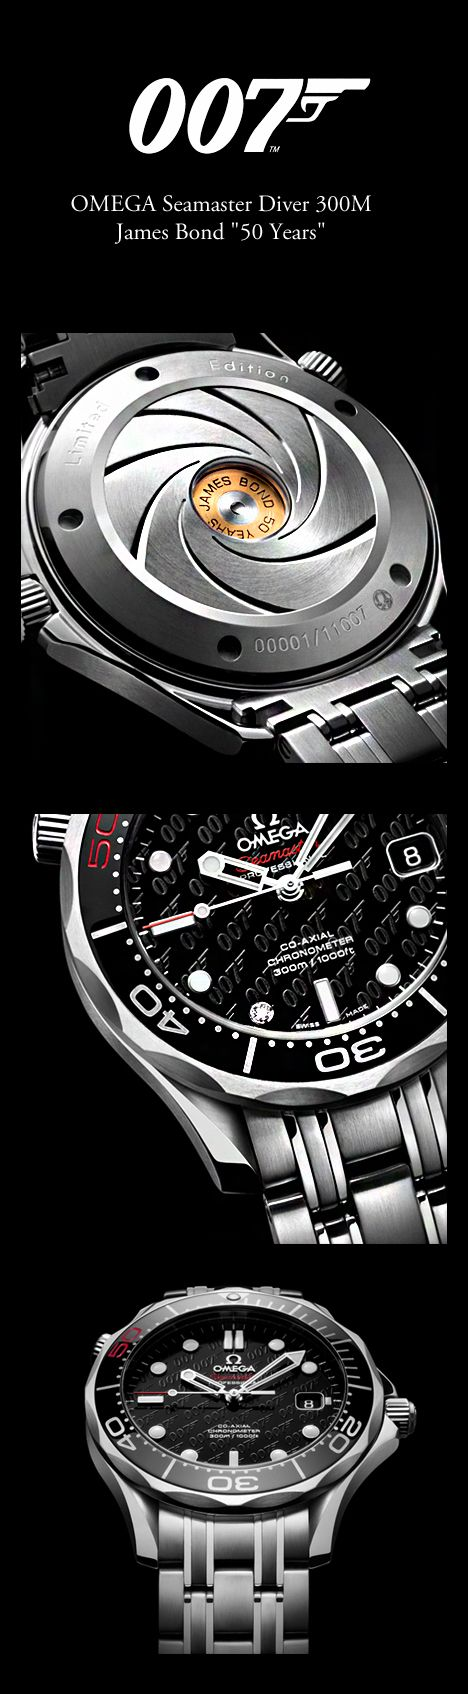 "OMEGA Seamaster Diver 300M James Bond ""50 Years"""